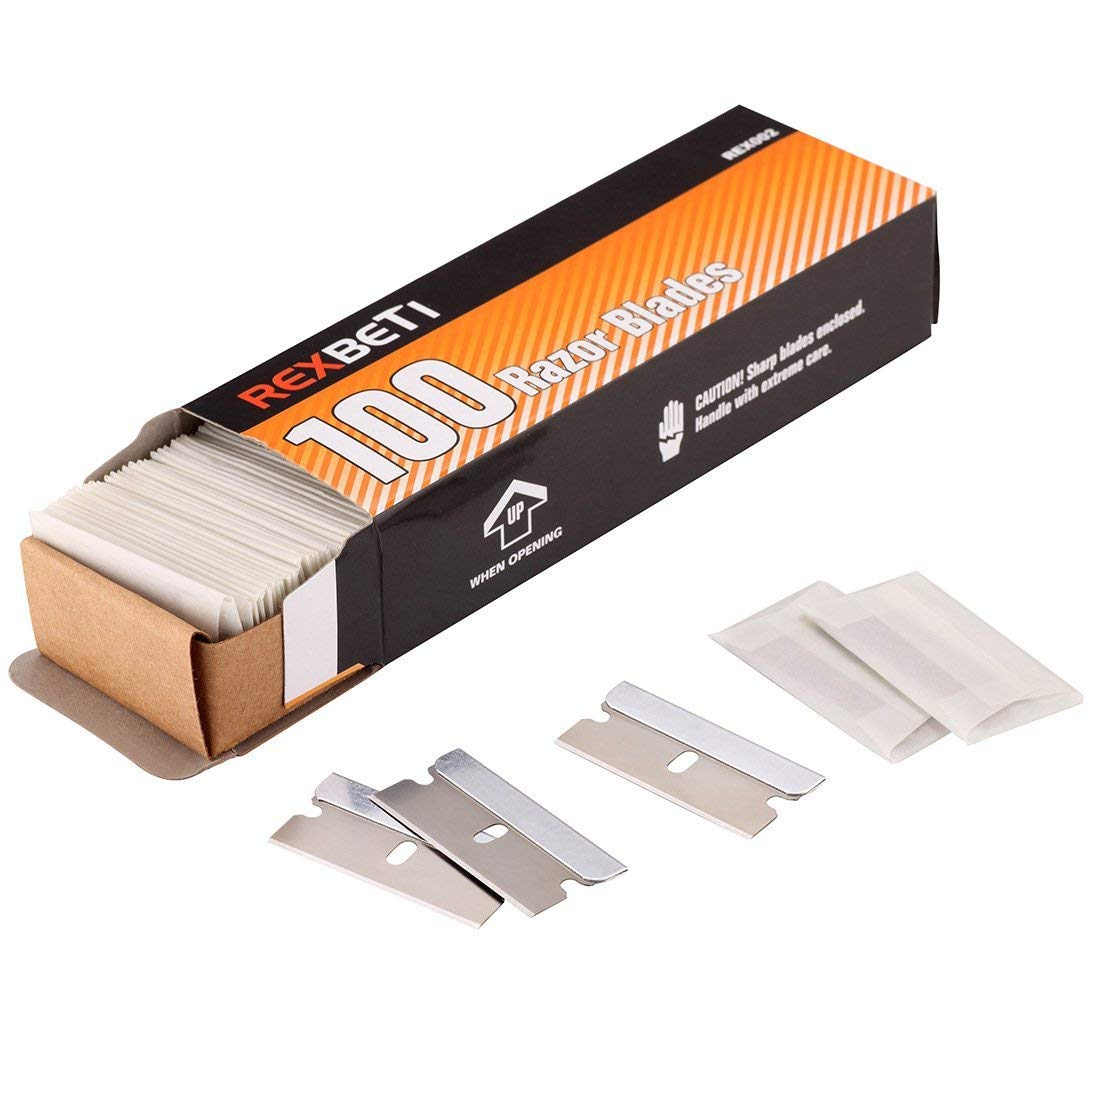 Single Edge Industrial Razor Blades By REXBETI, Box of 100